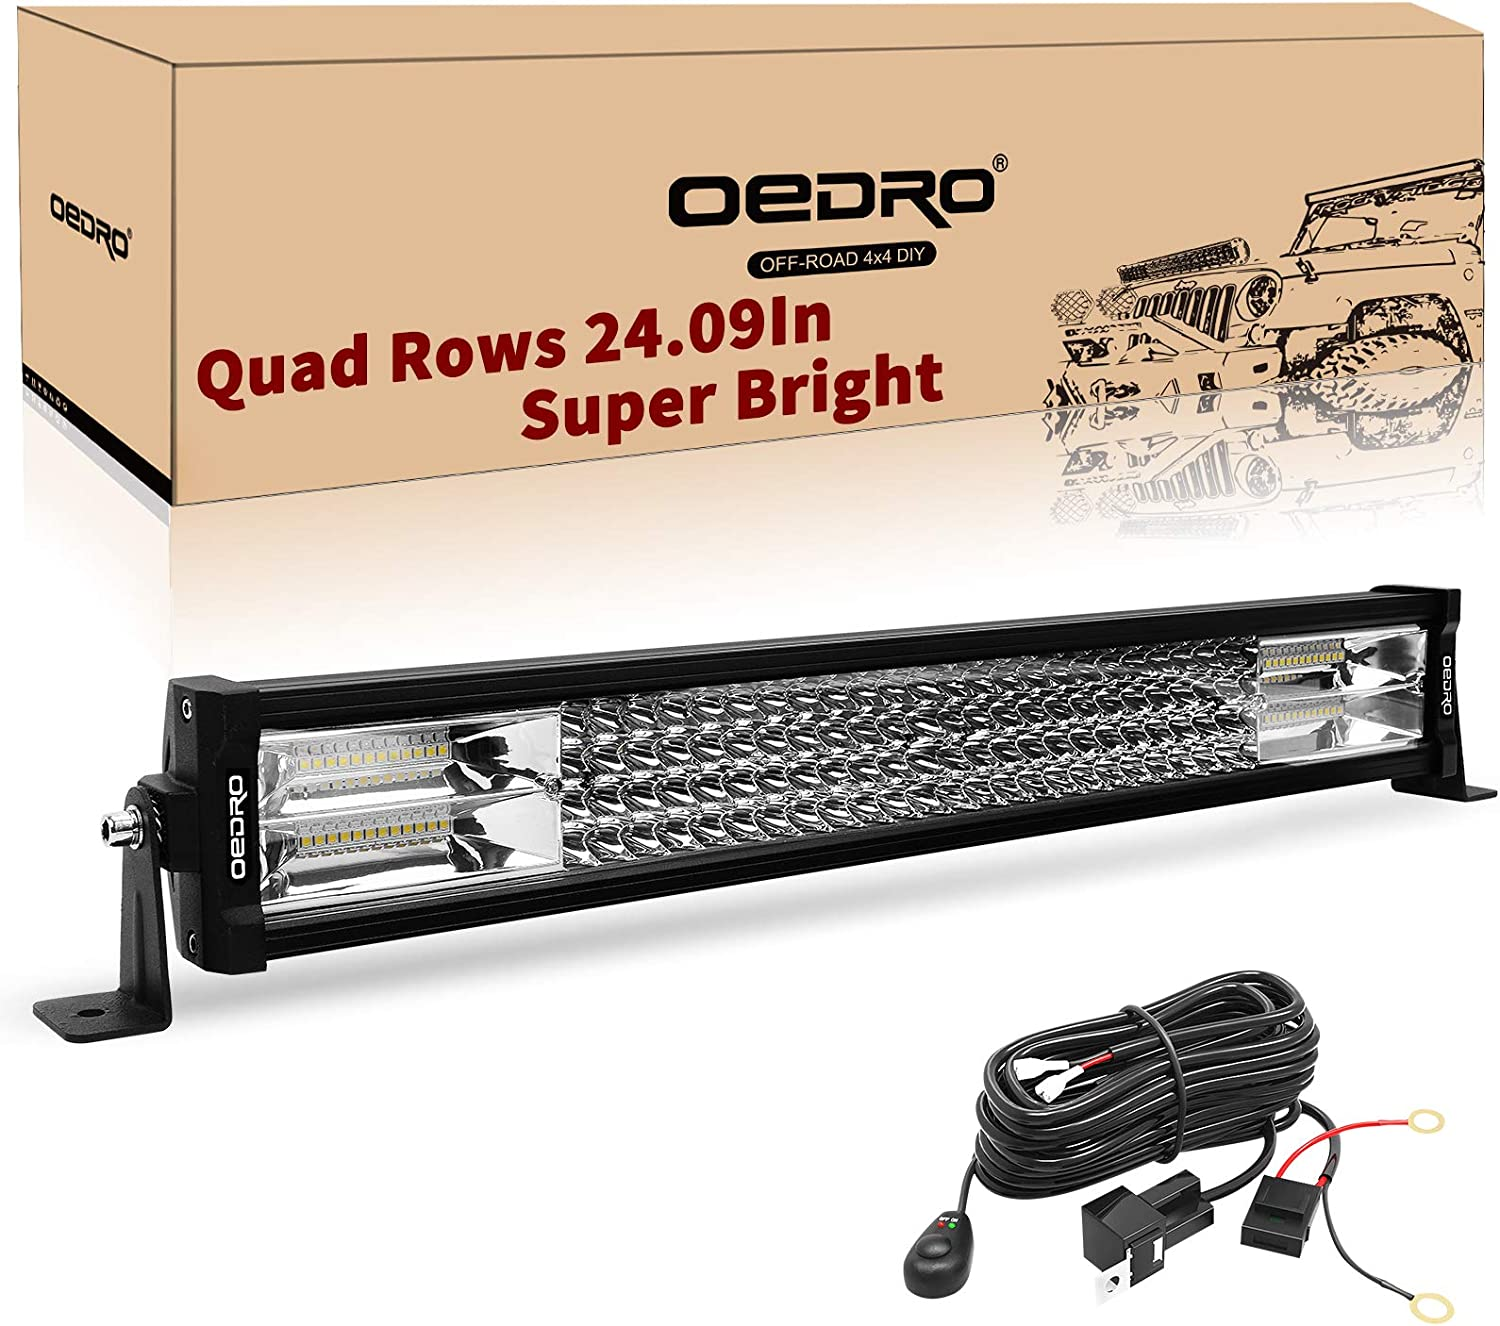 oEdRo LED Light Bar 22 Inch 520W 36400LM Quad-Rows Spot Flood Combo Led Lights Work Lights+Wiring Harness IP68 Grade Off Road Light 12V 24V Fit for Pickup Jeep SUV 4WD 4X4 ATV UTE Truck Tractor etc